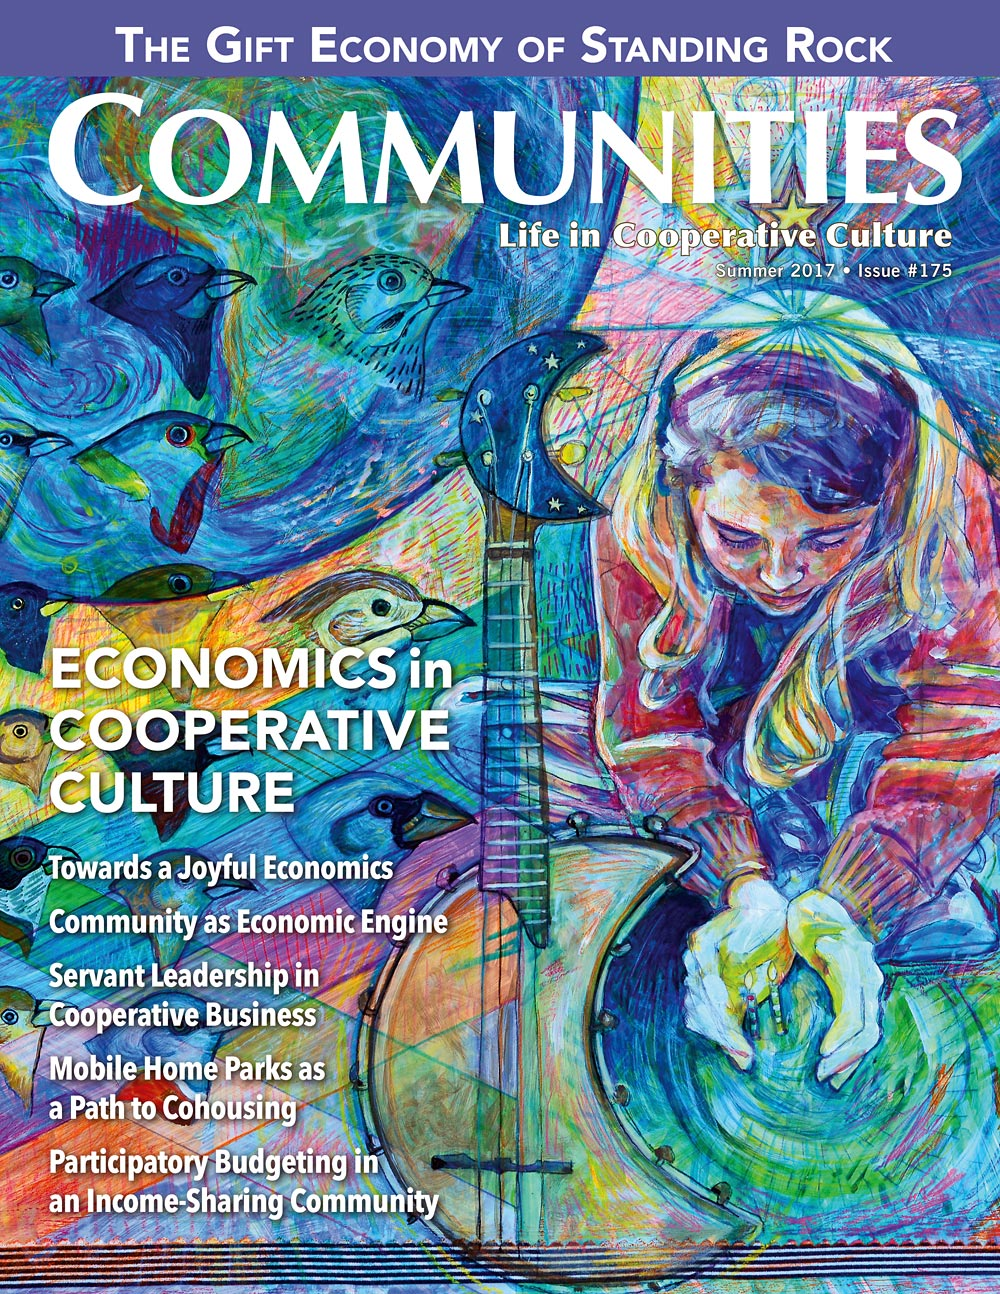 Communities magazine #175 Summer 2017